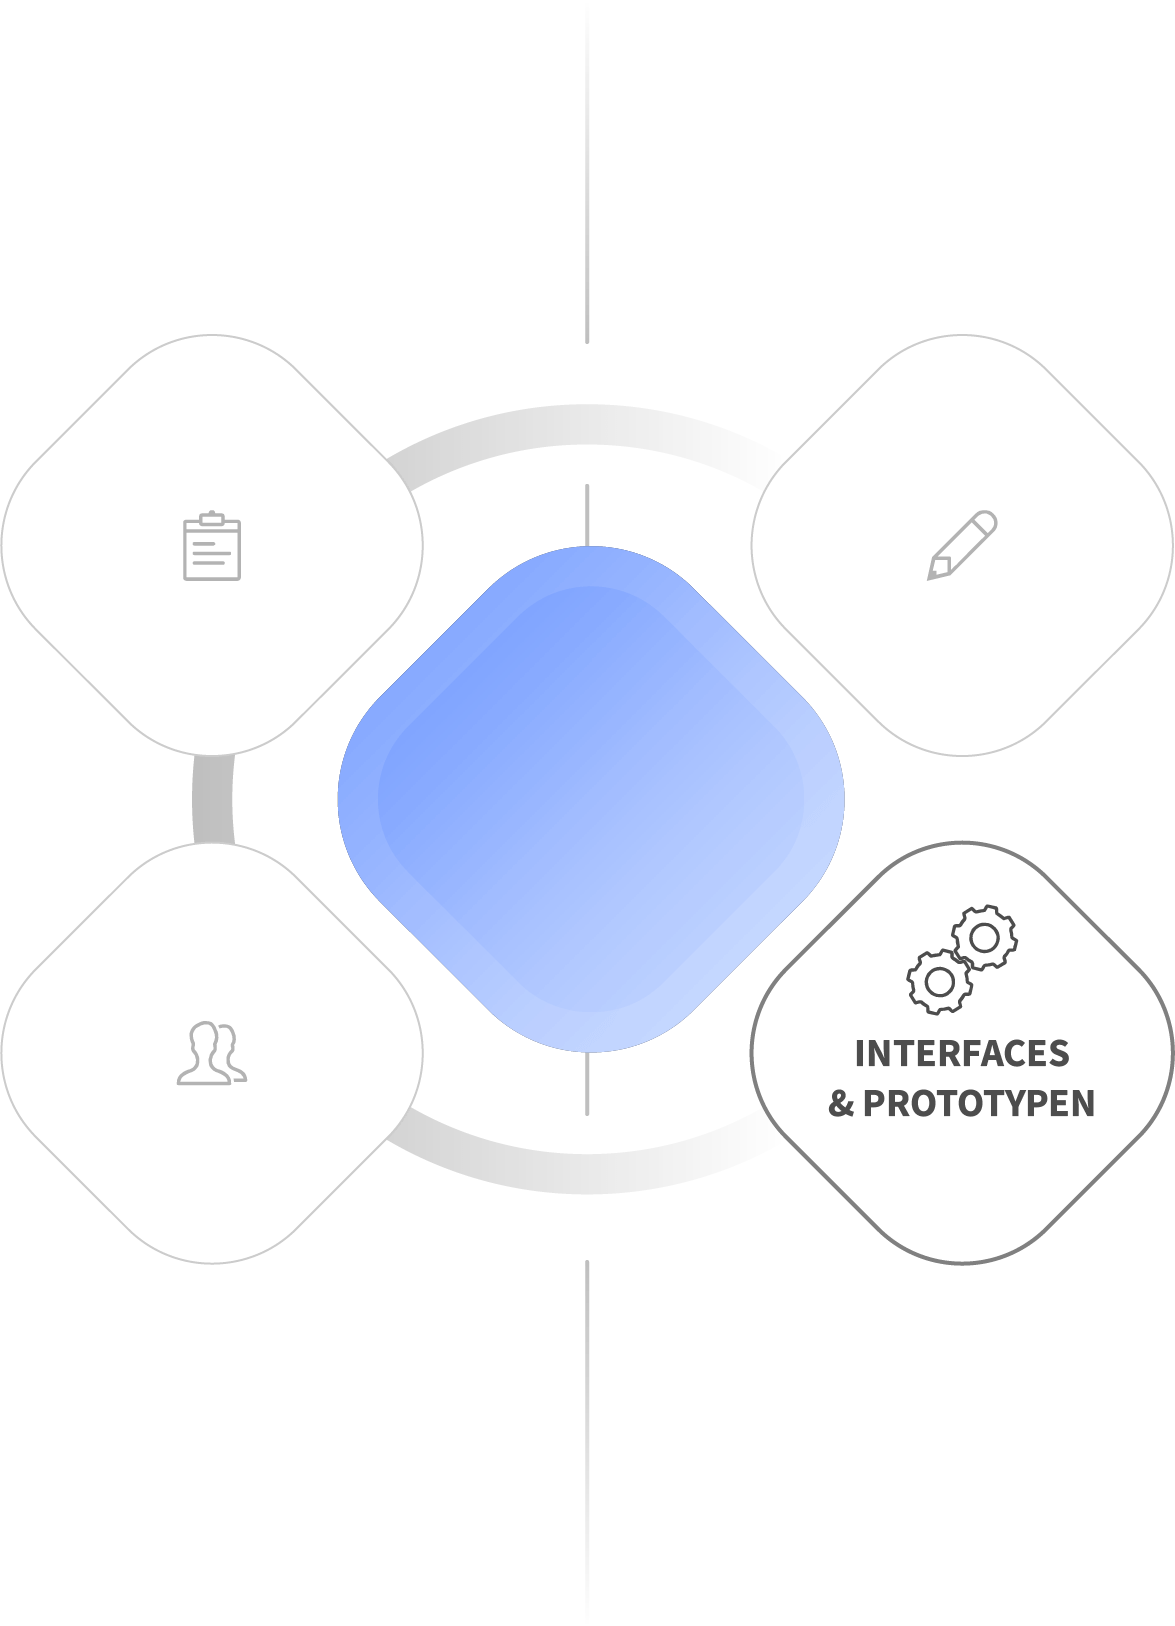 Usability Engineering - Services - Interfaces & Prototypen